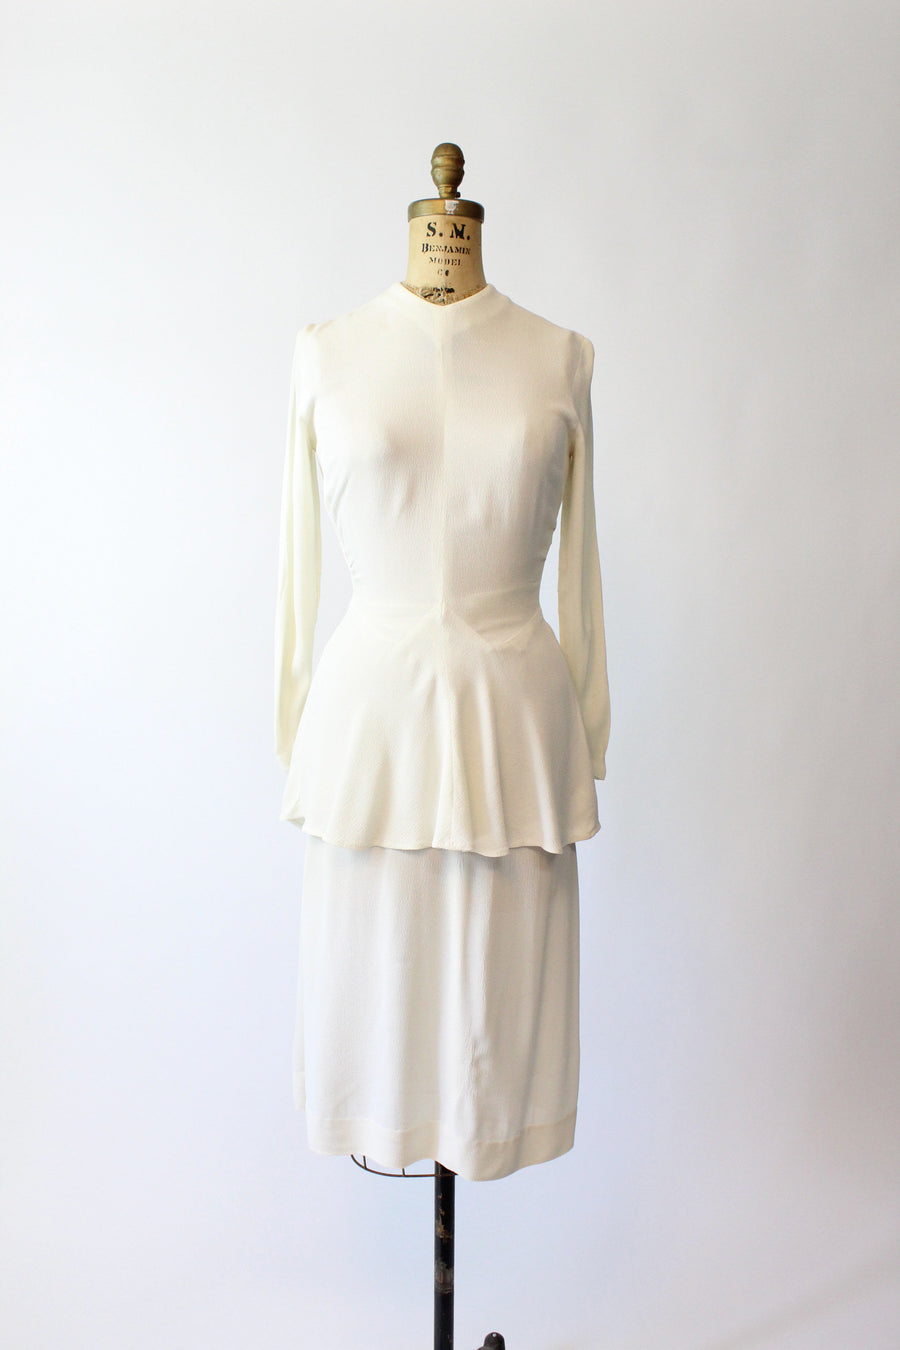 1940s wedding suit xs | vintage rayon blouse and skirt | new in